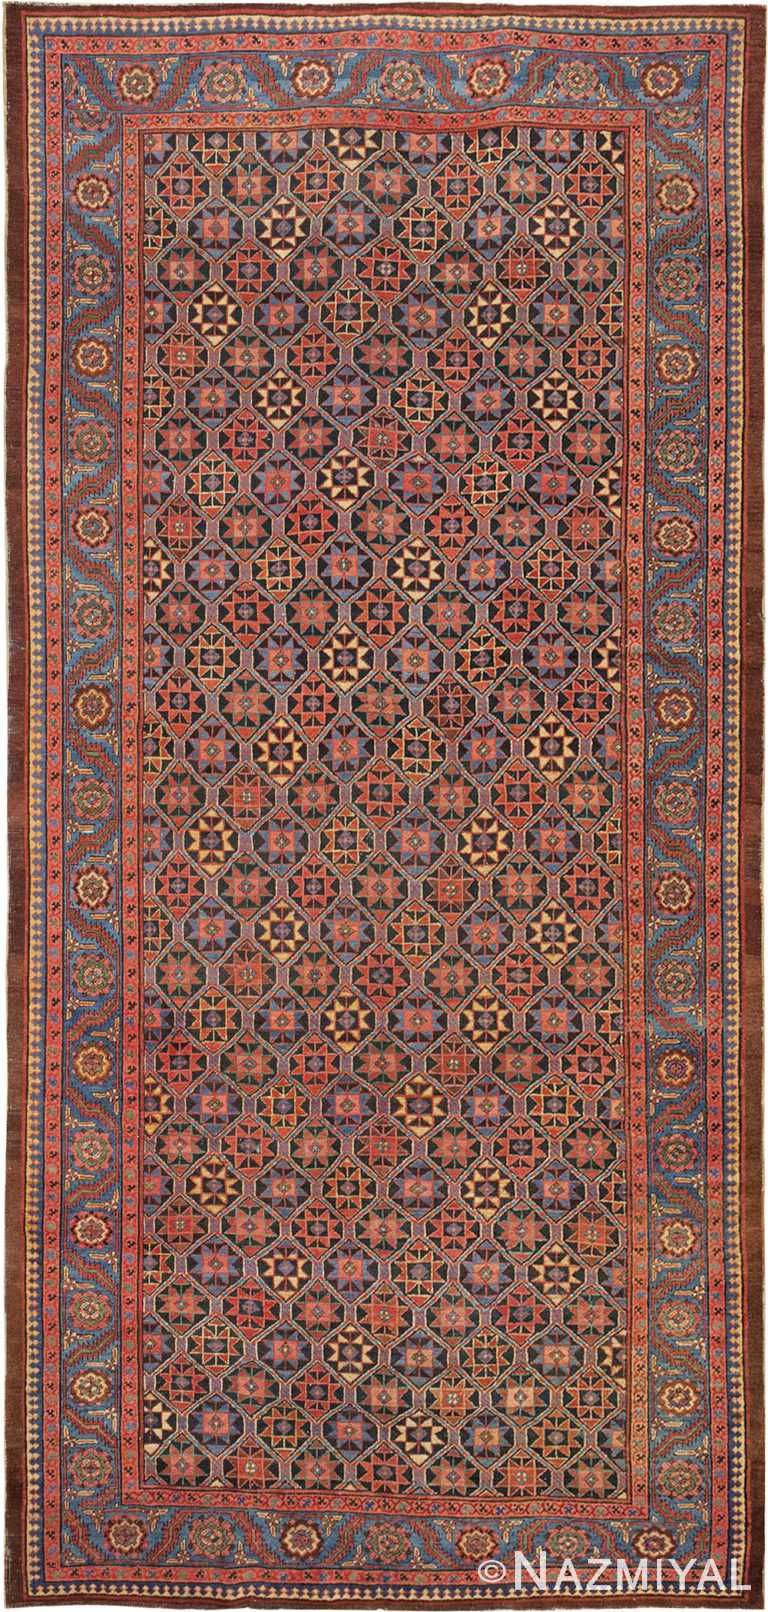 Tribal Antique Persian Bakshaish Gallery Rug #45892 by Nazmiyal Antique Rugs